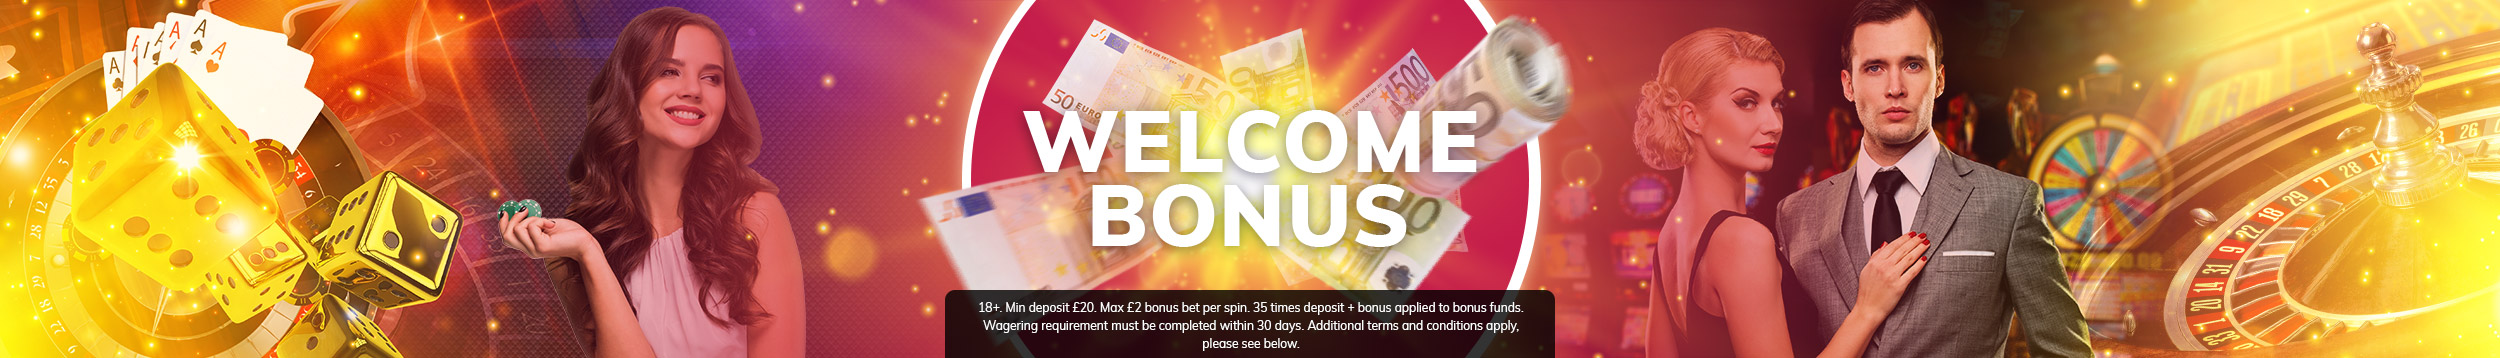 Grab your welcome bonus